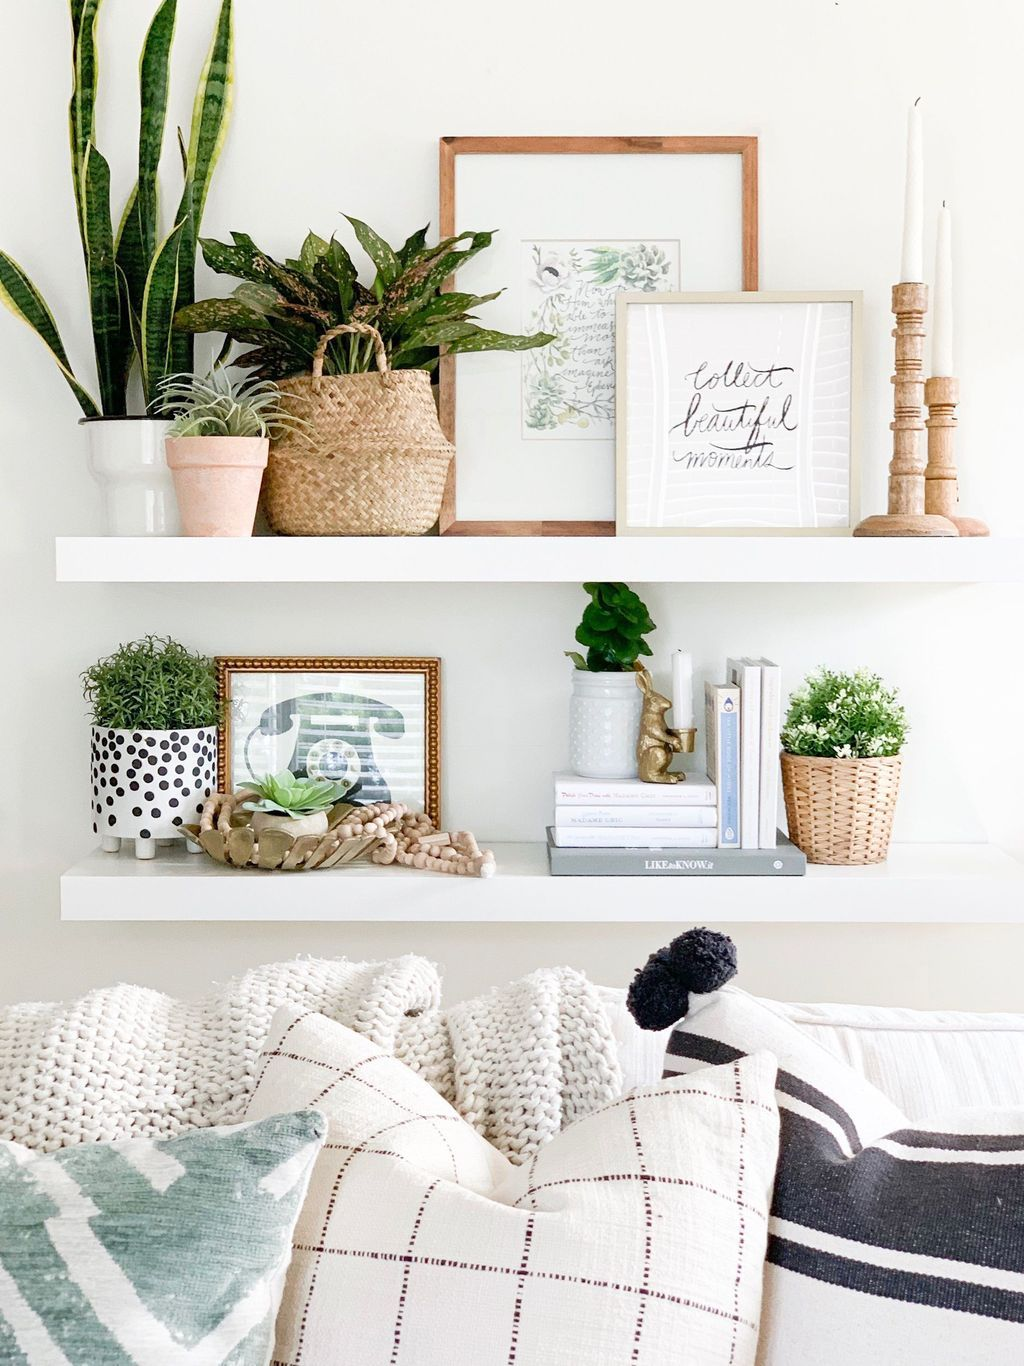 32 Nice Modern Minimalist Wall Decor Ideas For Your Interior In